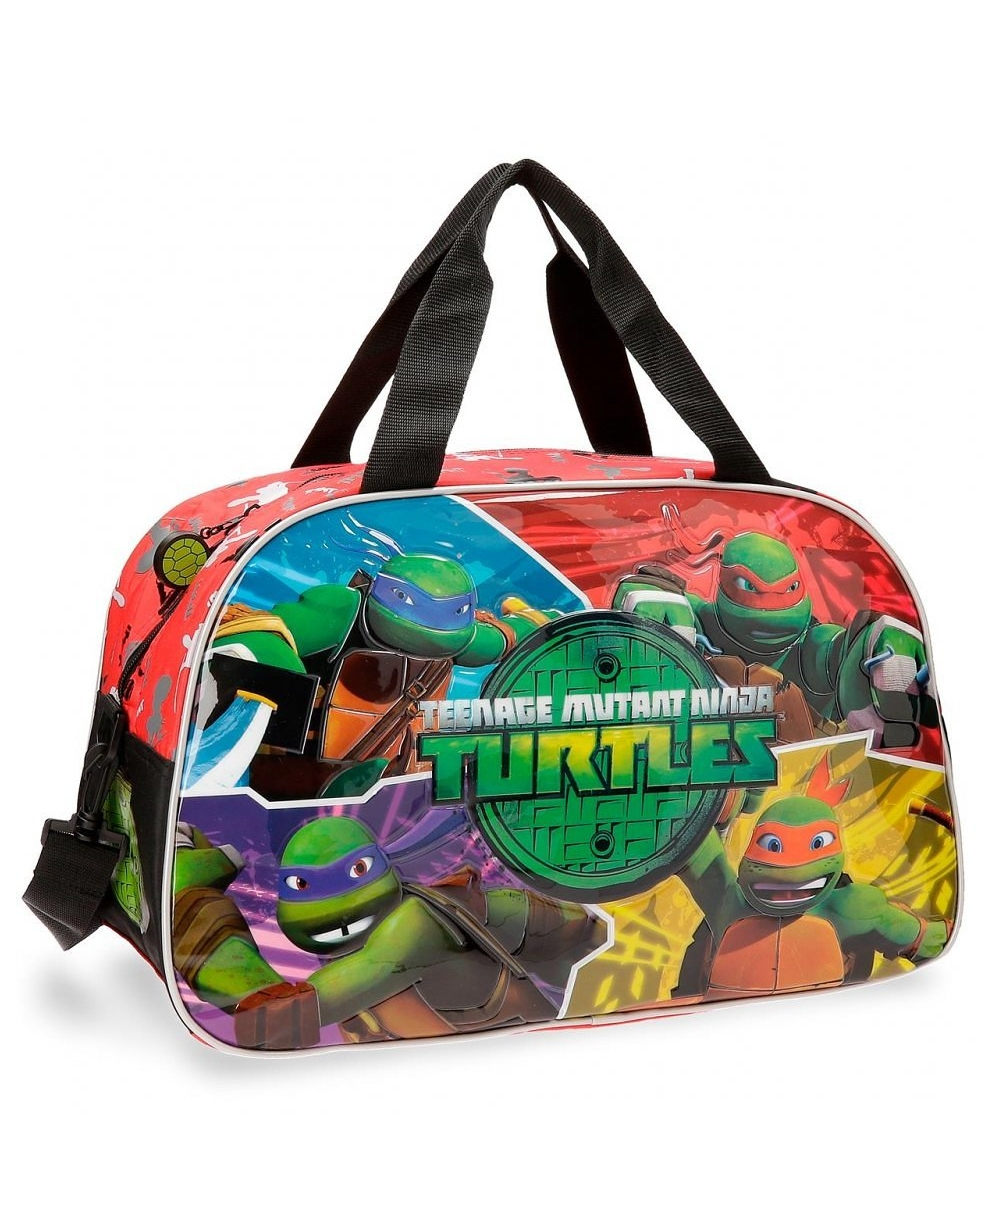 Tortugas Ninja Cartoon Bolsa de Viaje Multicolor (Foto )